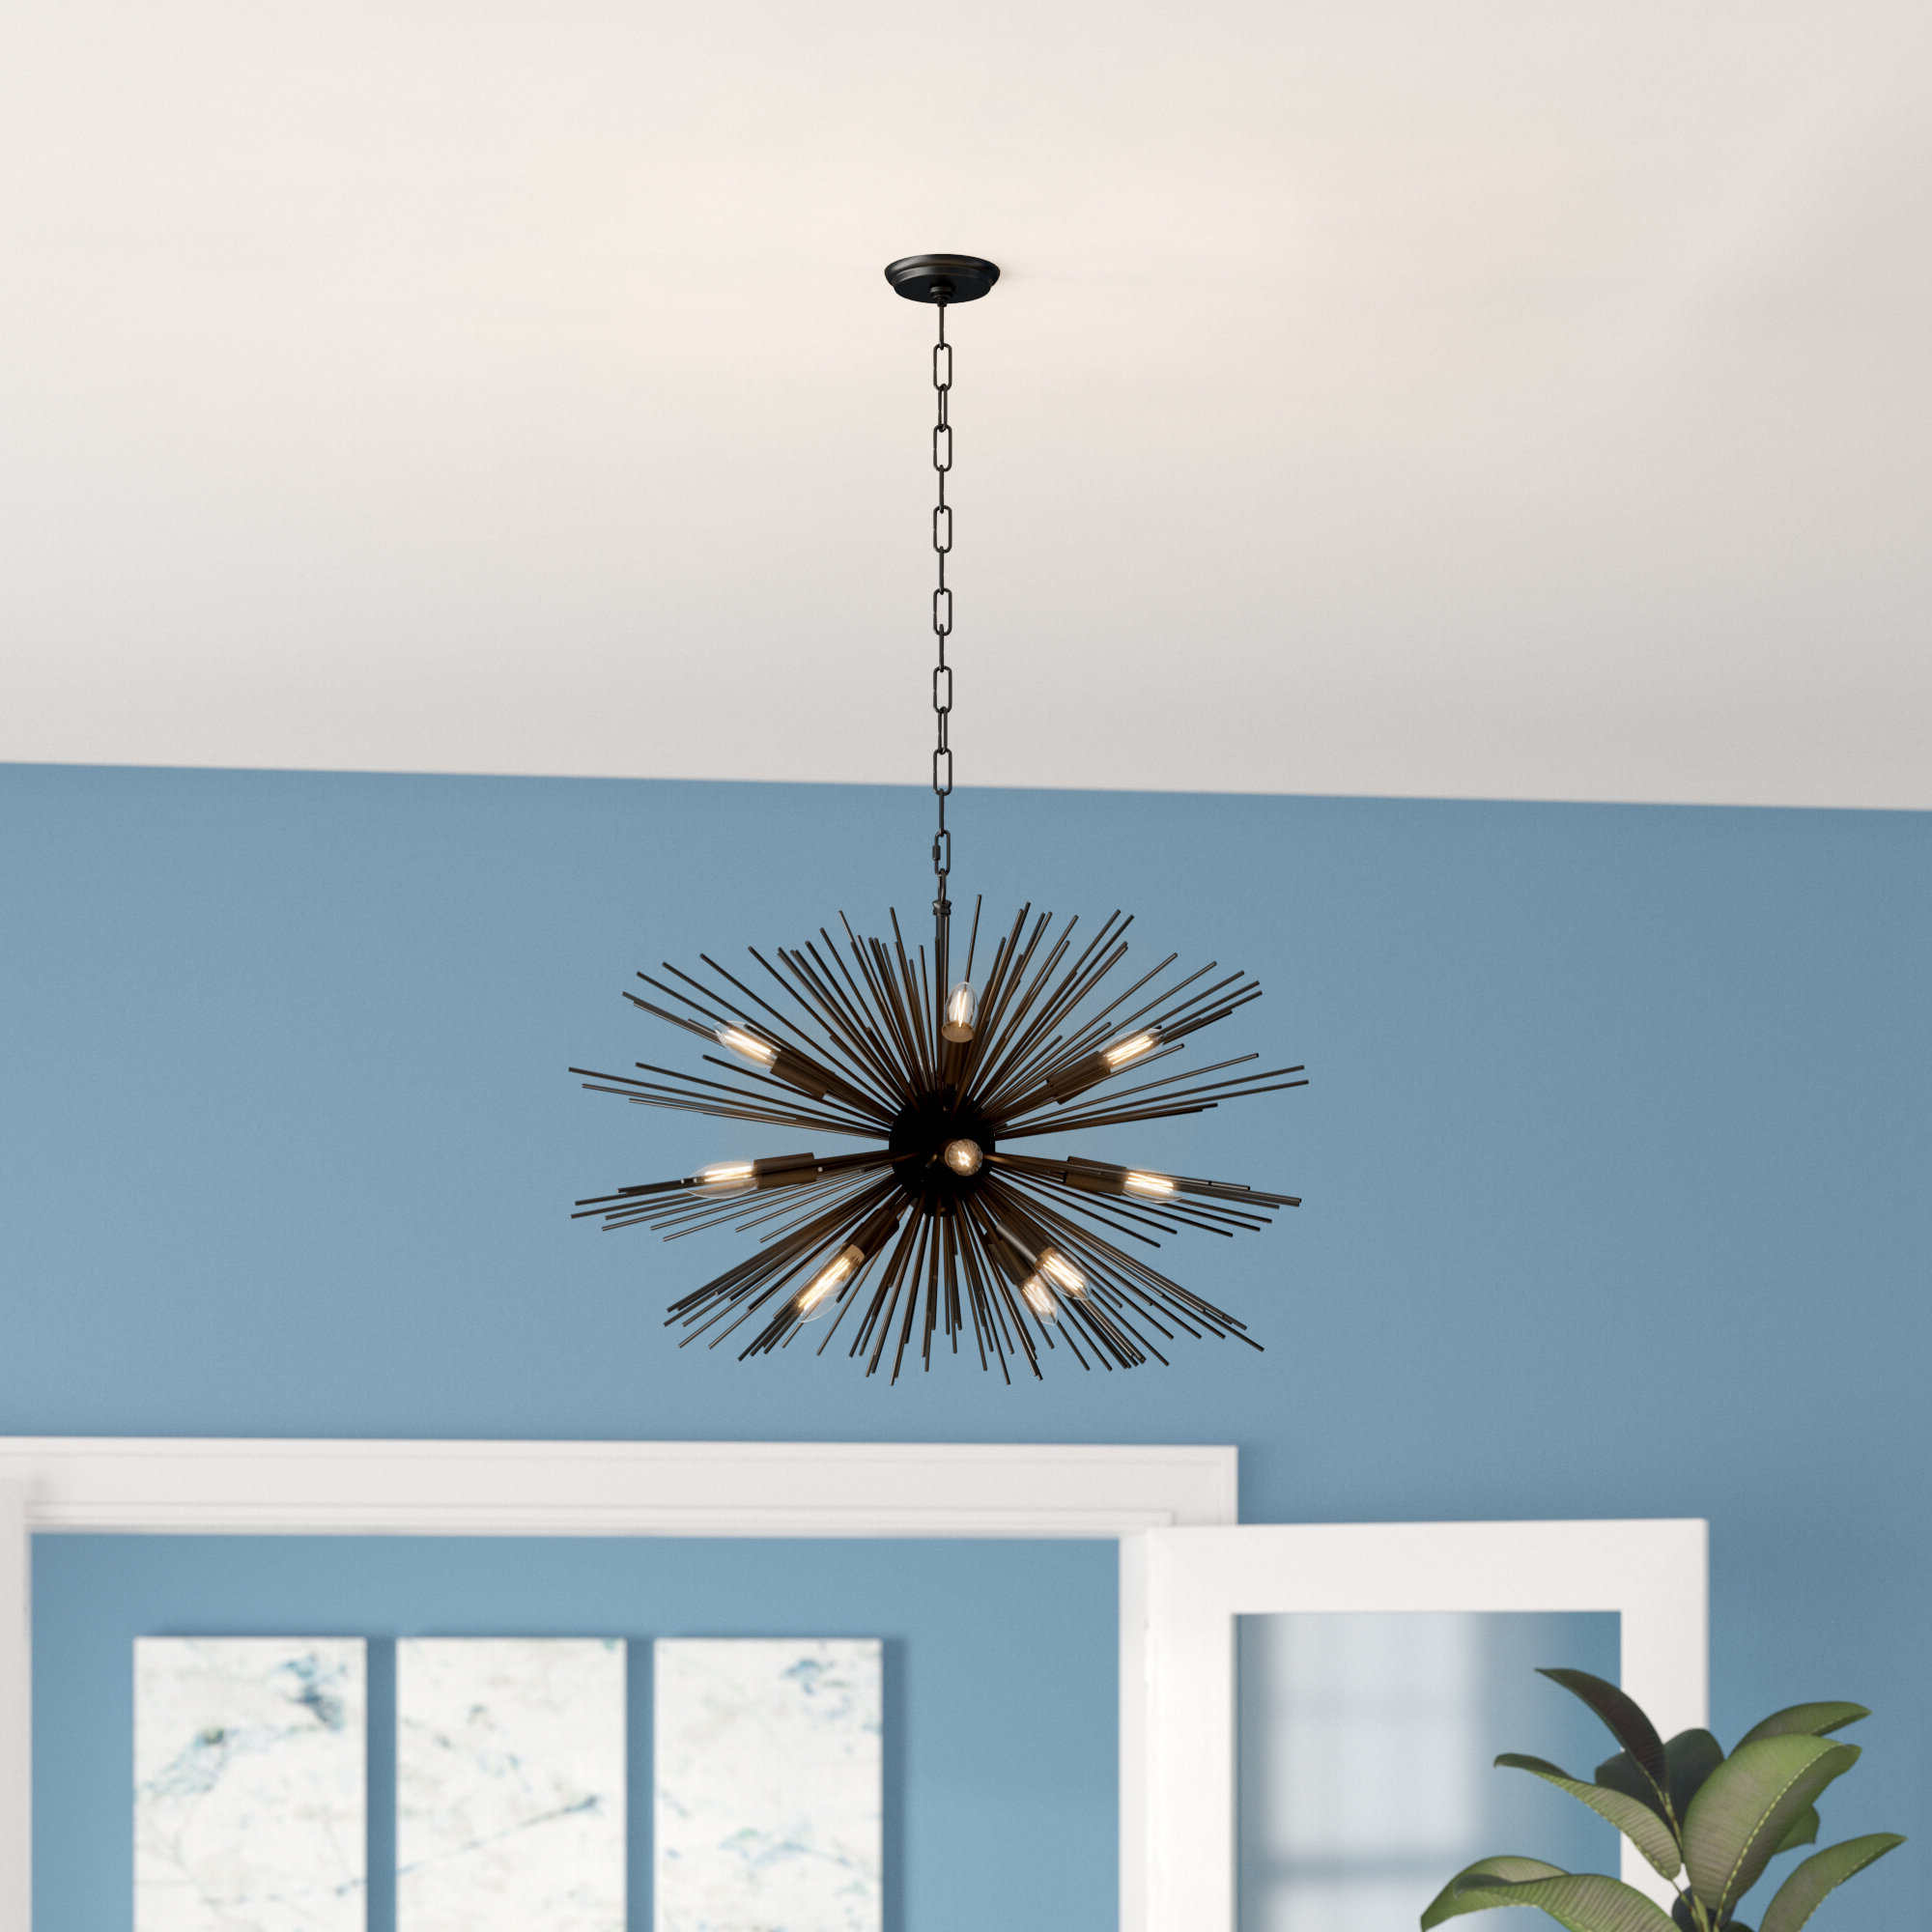 Nelly 12 Light Sputnik Chandeliers Intended For Best And Newest Modern Rustic Interiors Nelly 12 Light Sputnik Chandelier (Gallery 9 of 20)